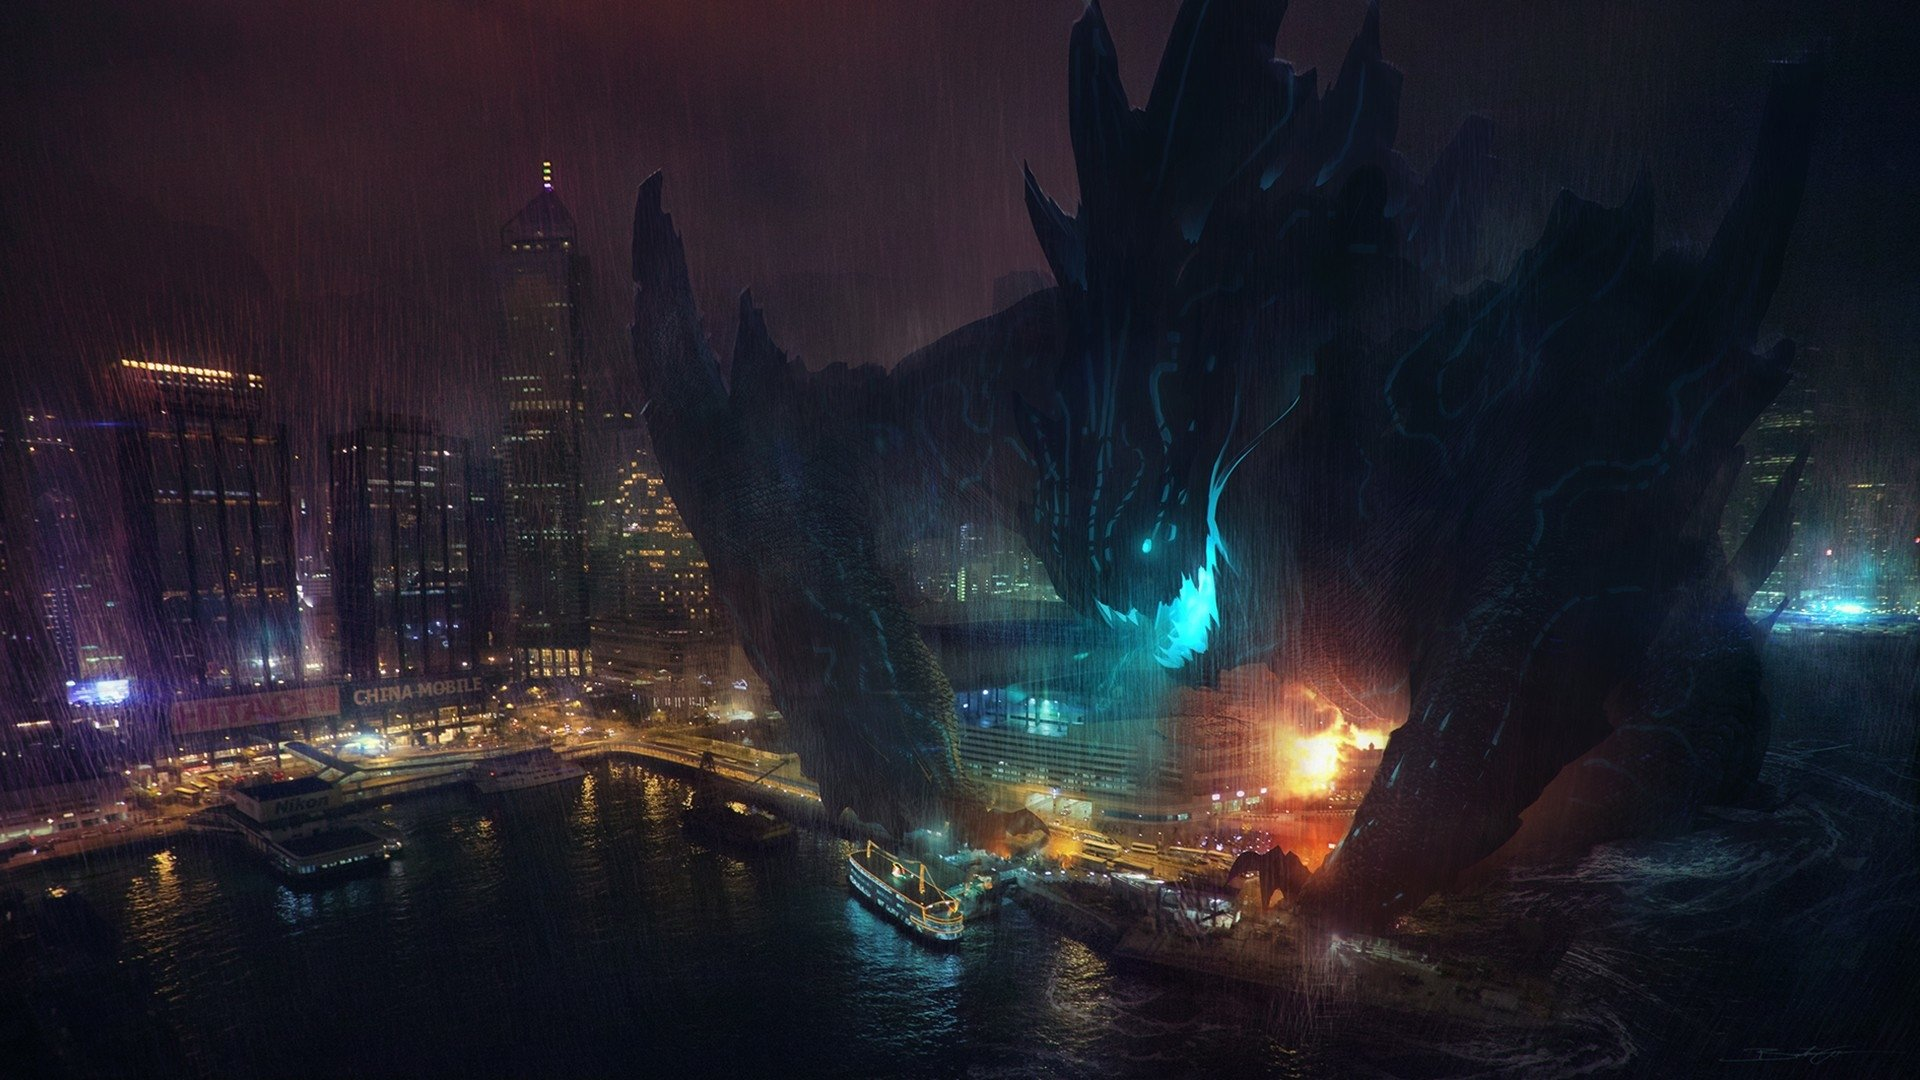 Movie - Pacific Rim  Landscape City Ocean Movie Wallpaper